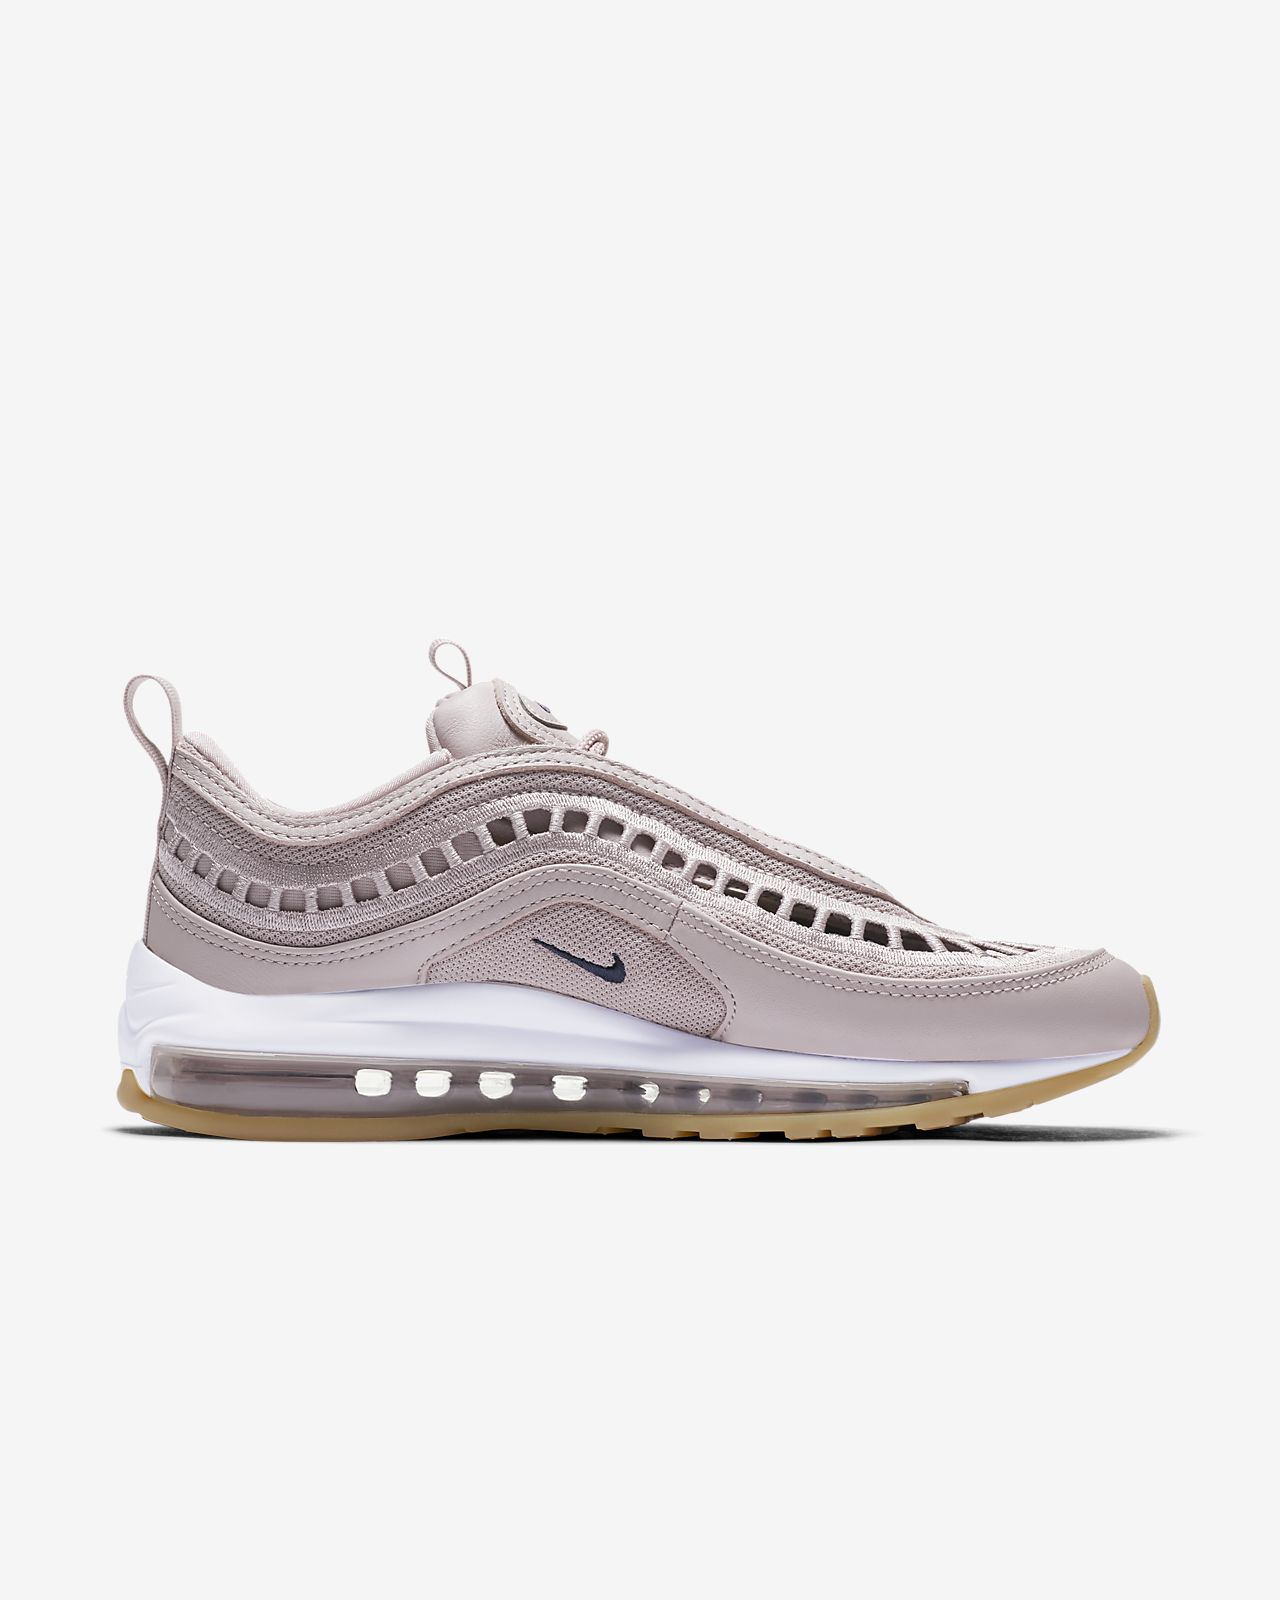 f4b2cda4ba Nike Air Max 97 Ultra '17 SI Women's Shoe. Nike.com GB